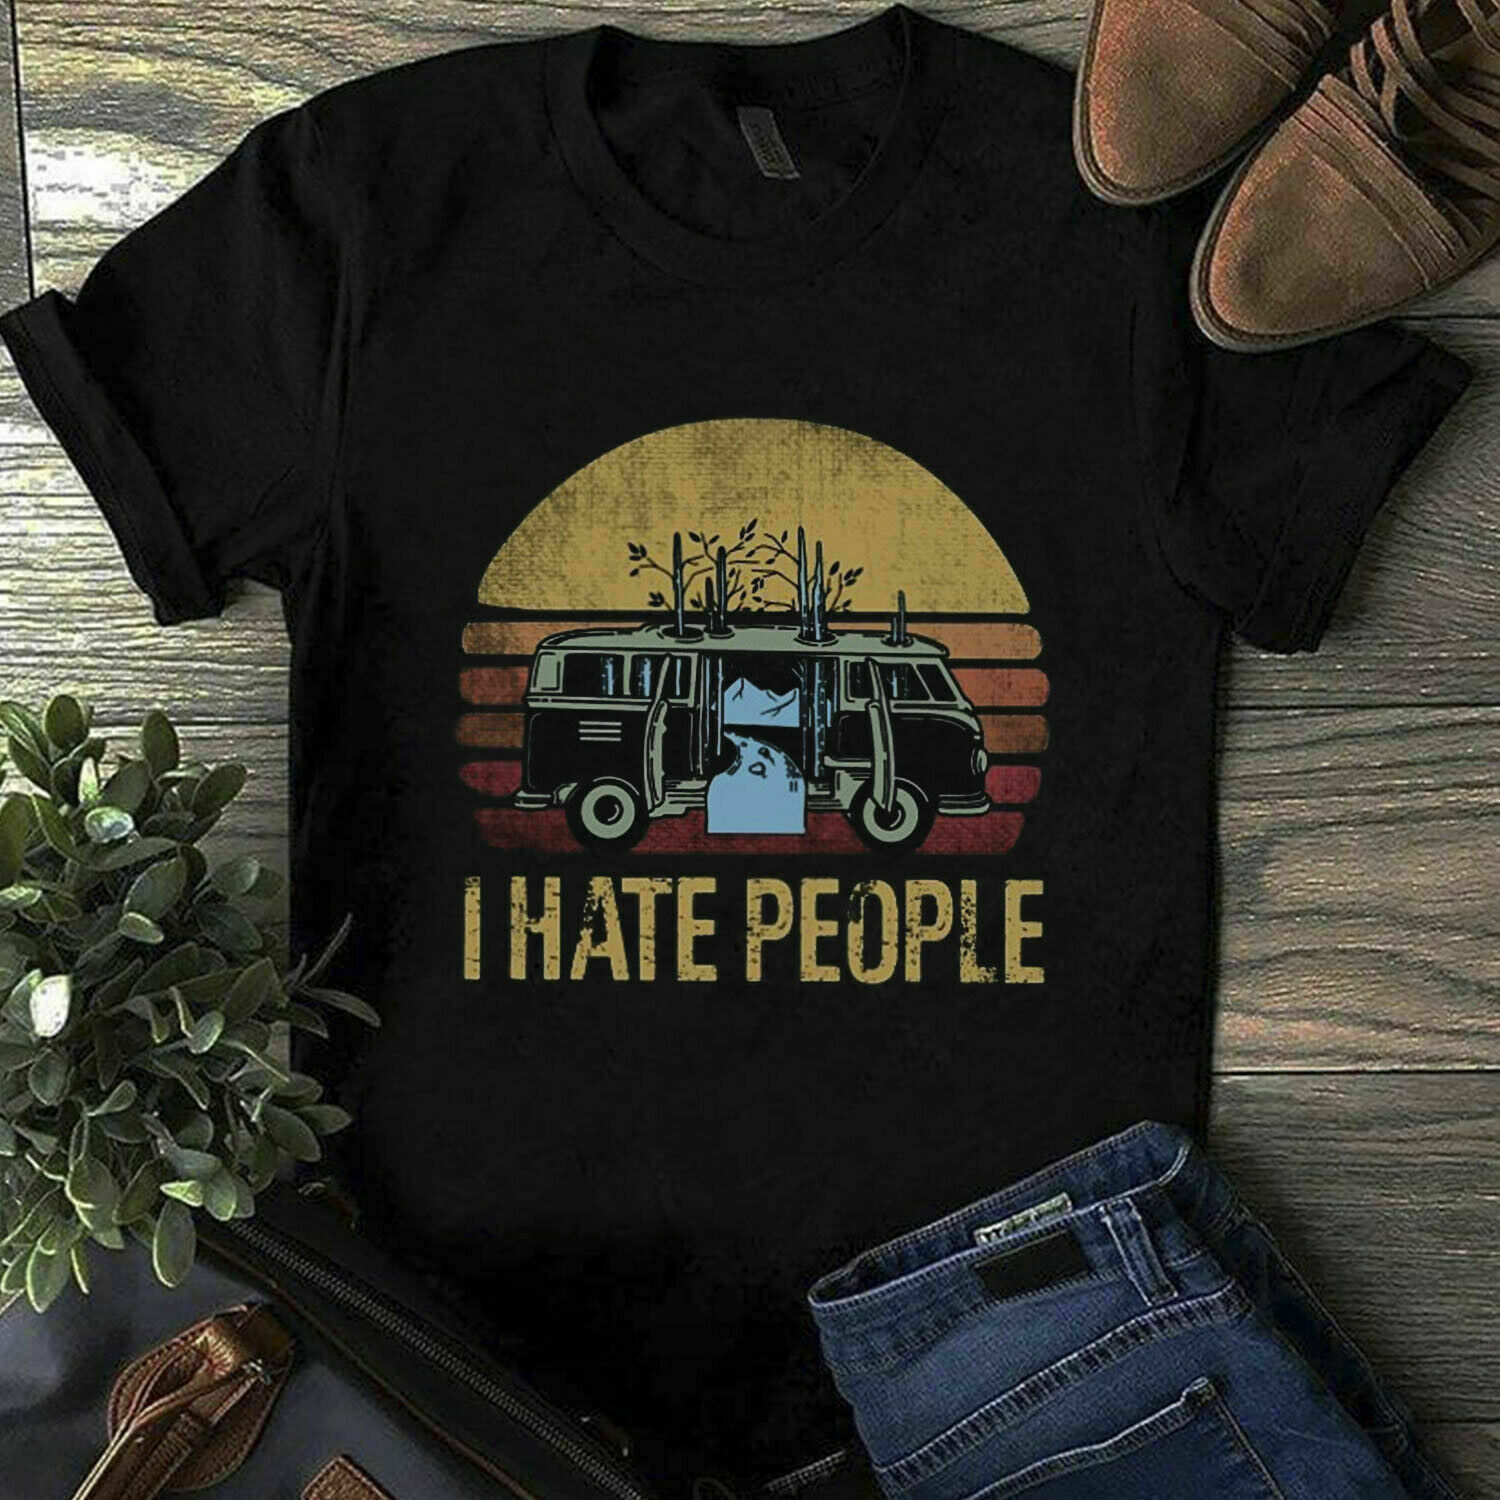 Go Camping I Hate People Black T <font><b>Shirt</b></font> M <font><b>6</b></font> <font><b>Xl</b></font> image